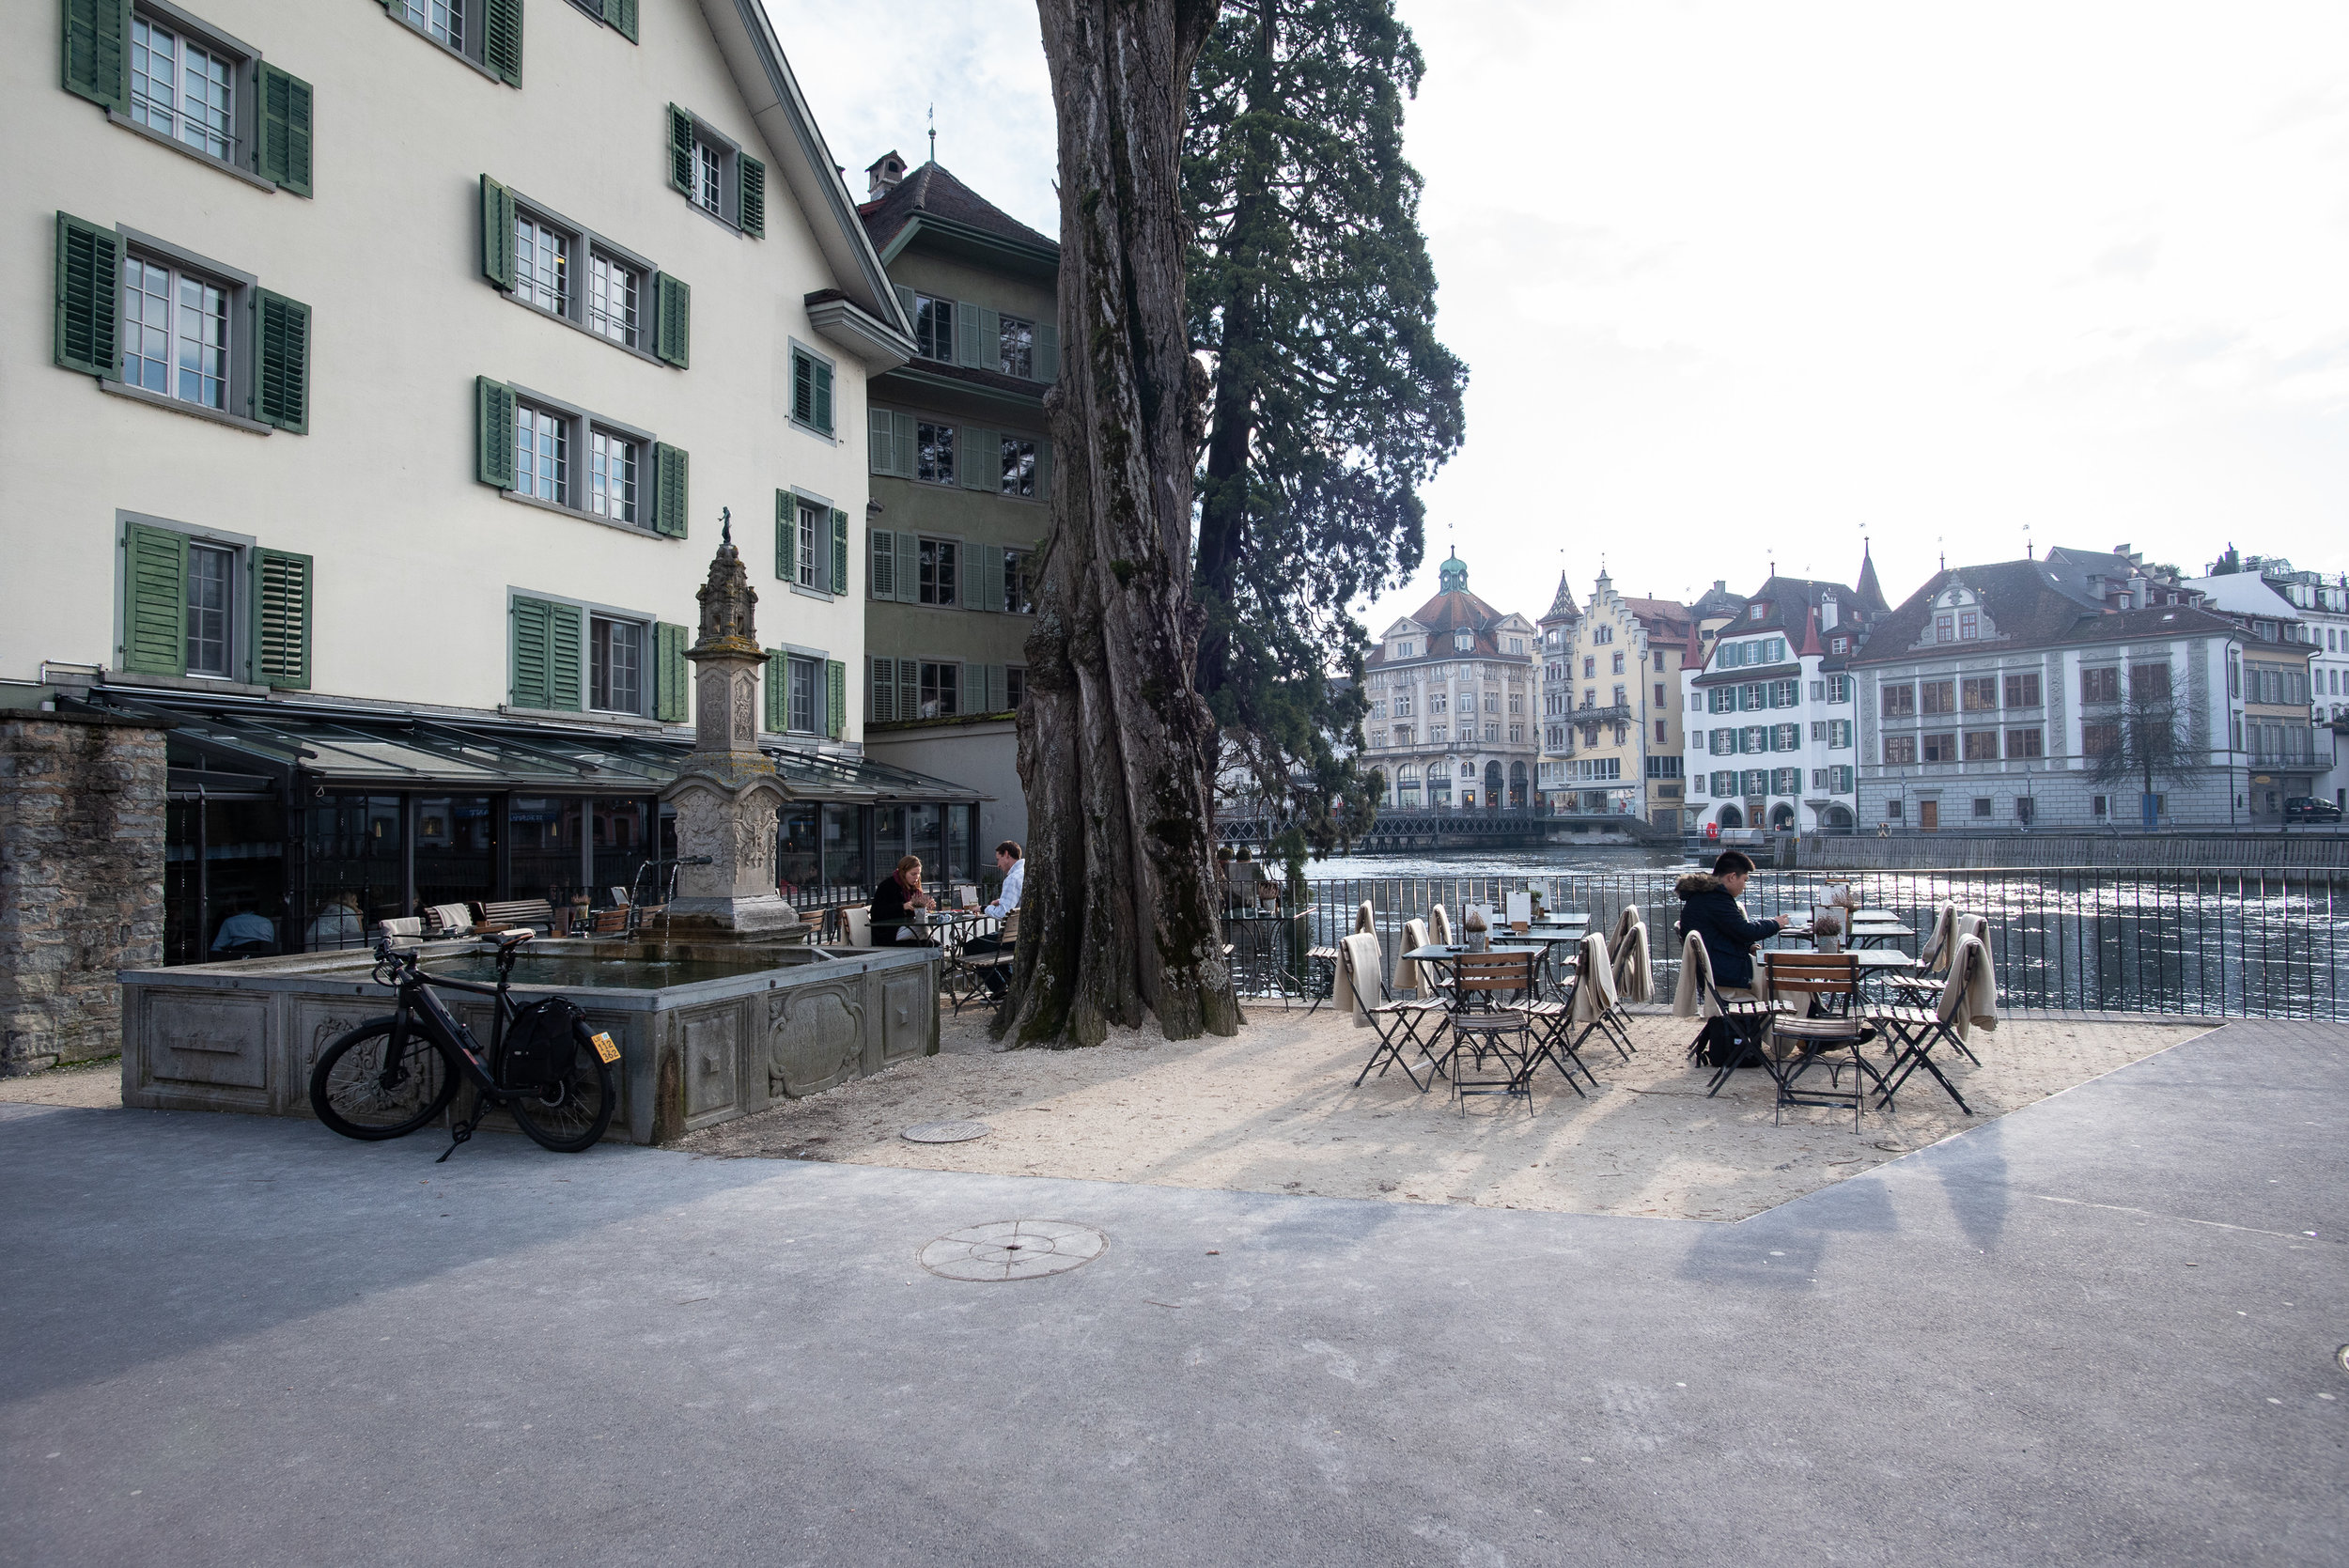 Cafe with patio seating by the water, just steps from The Tourist City & River Hotel.